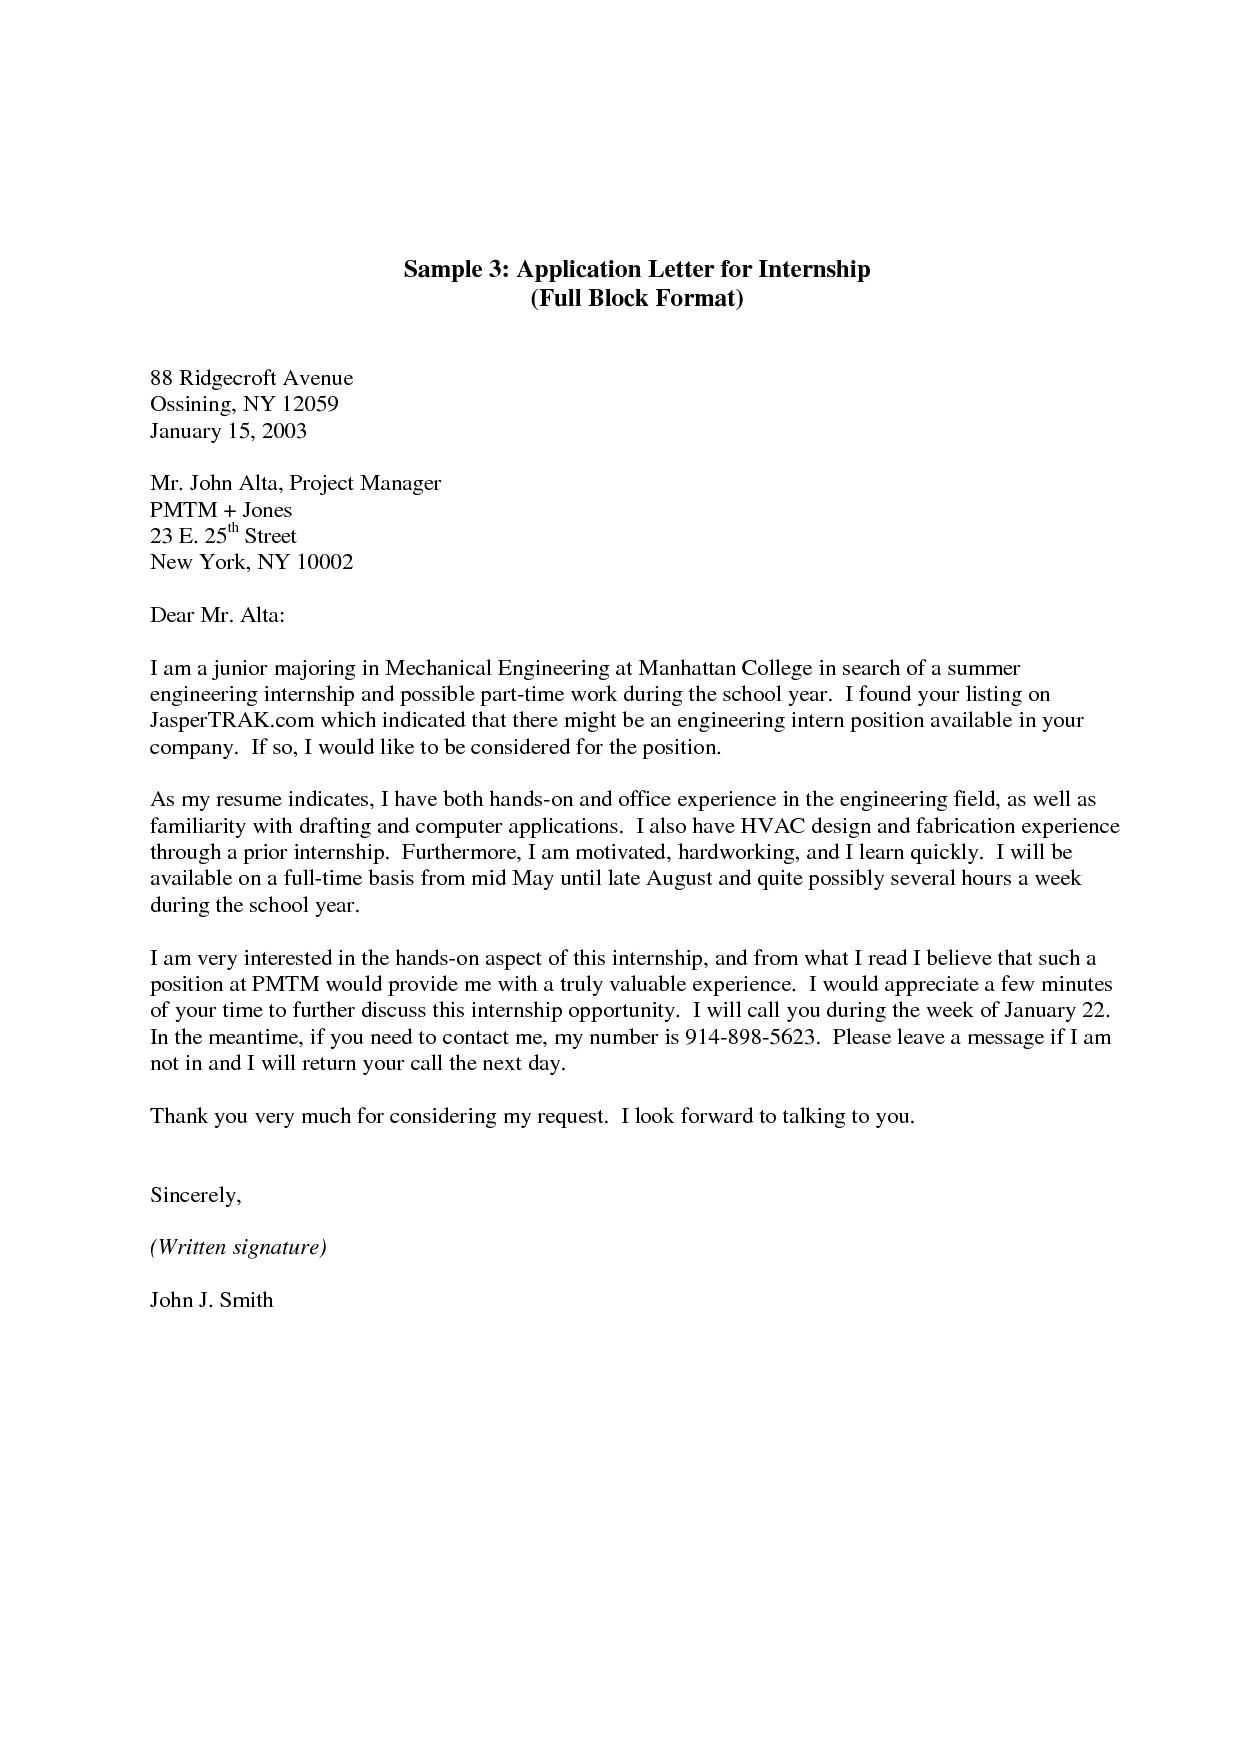 internship application letter here is a sample cover letter for internship application letter here is a sample cover letter for applying for a job or